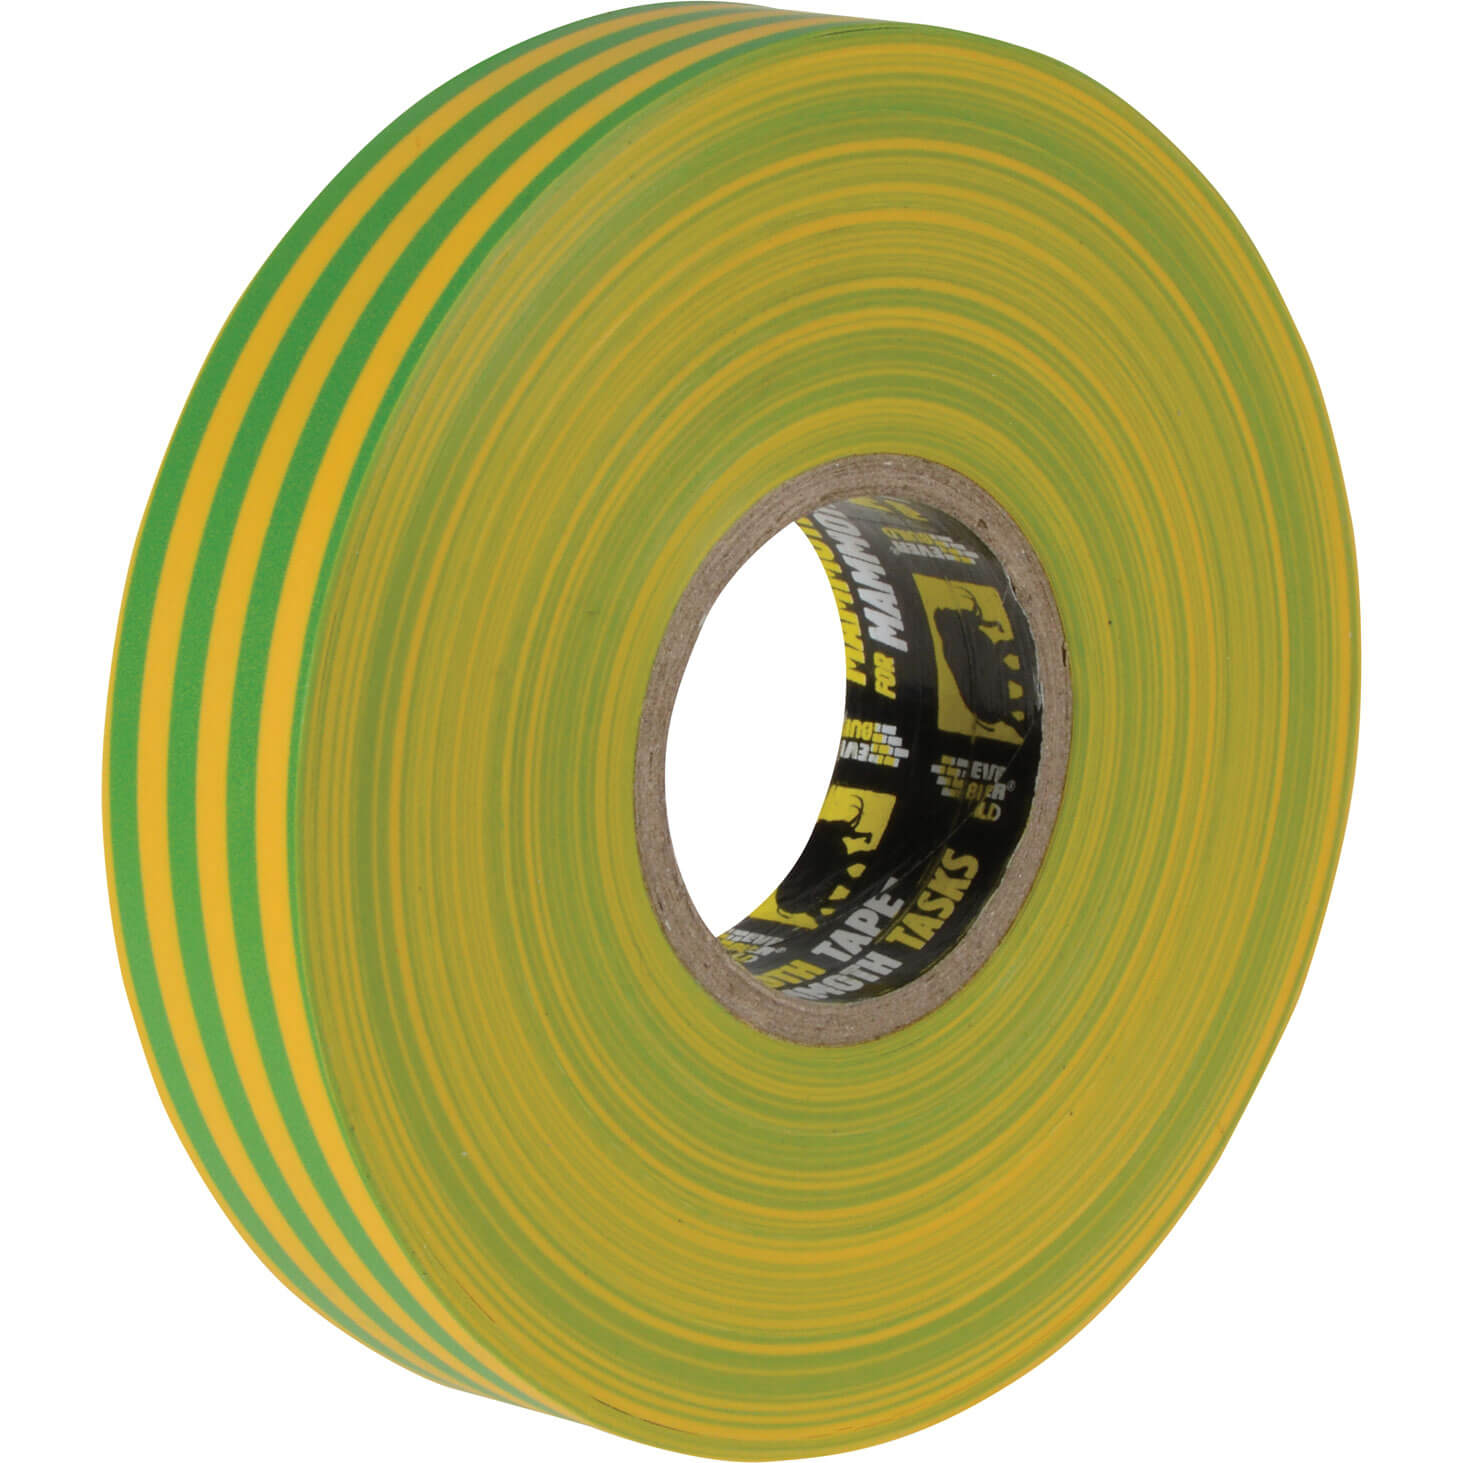 Image of Everbuild Electrical Insulation Tape Yellow / Green 19mm 33m